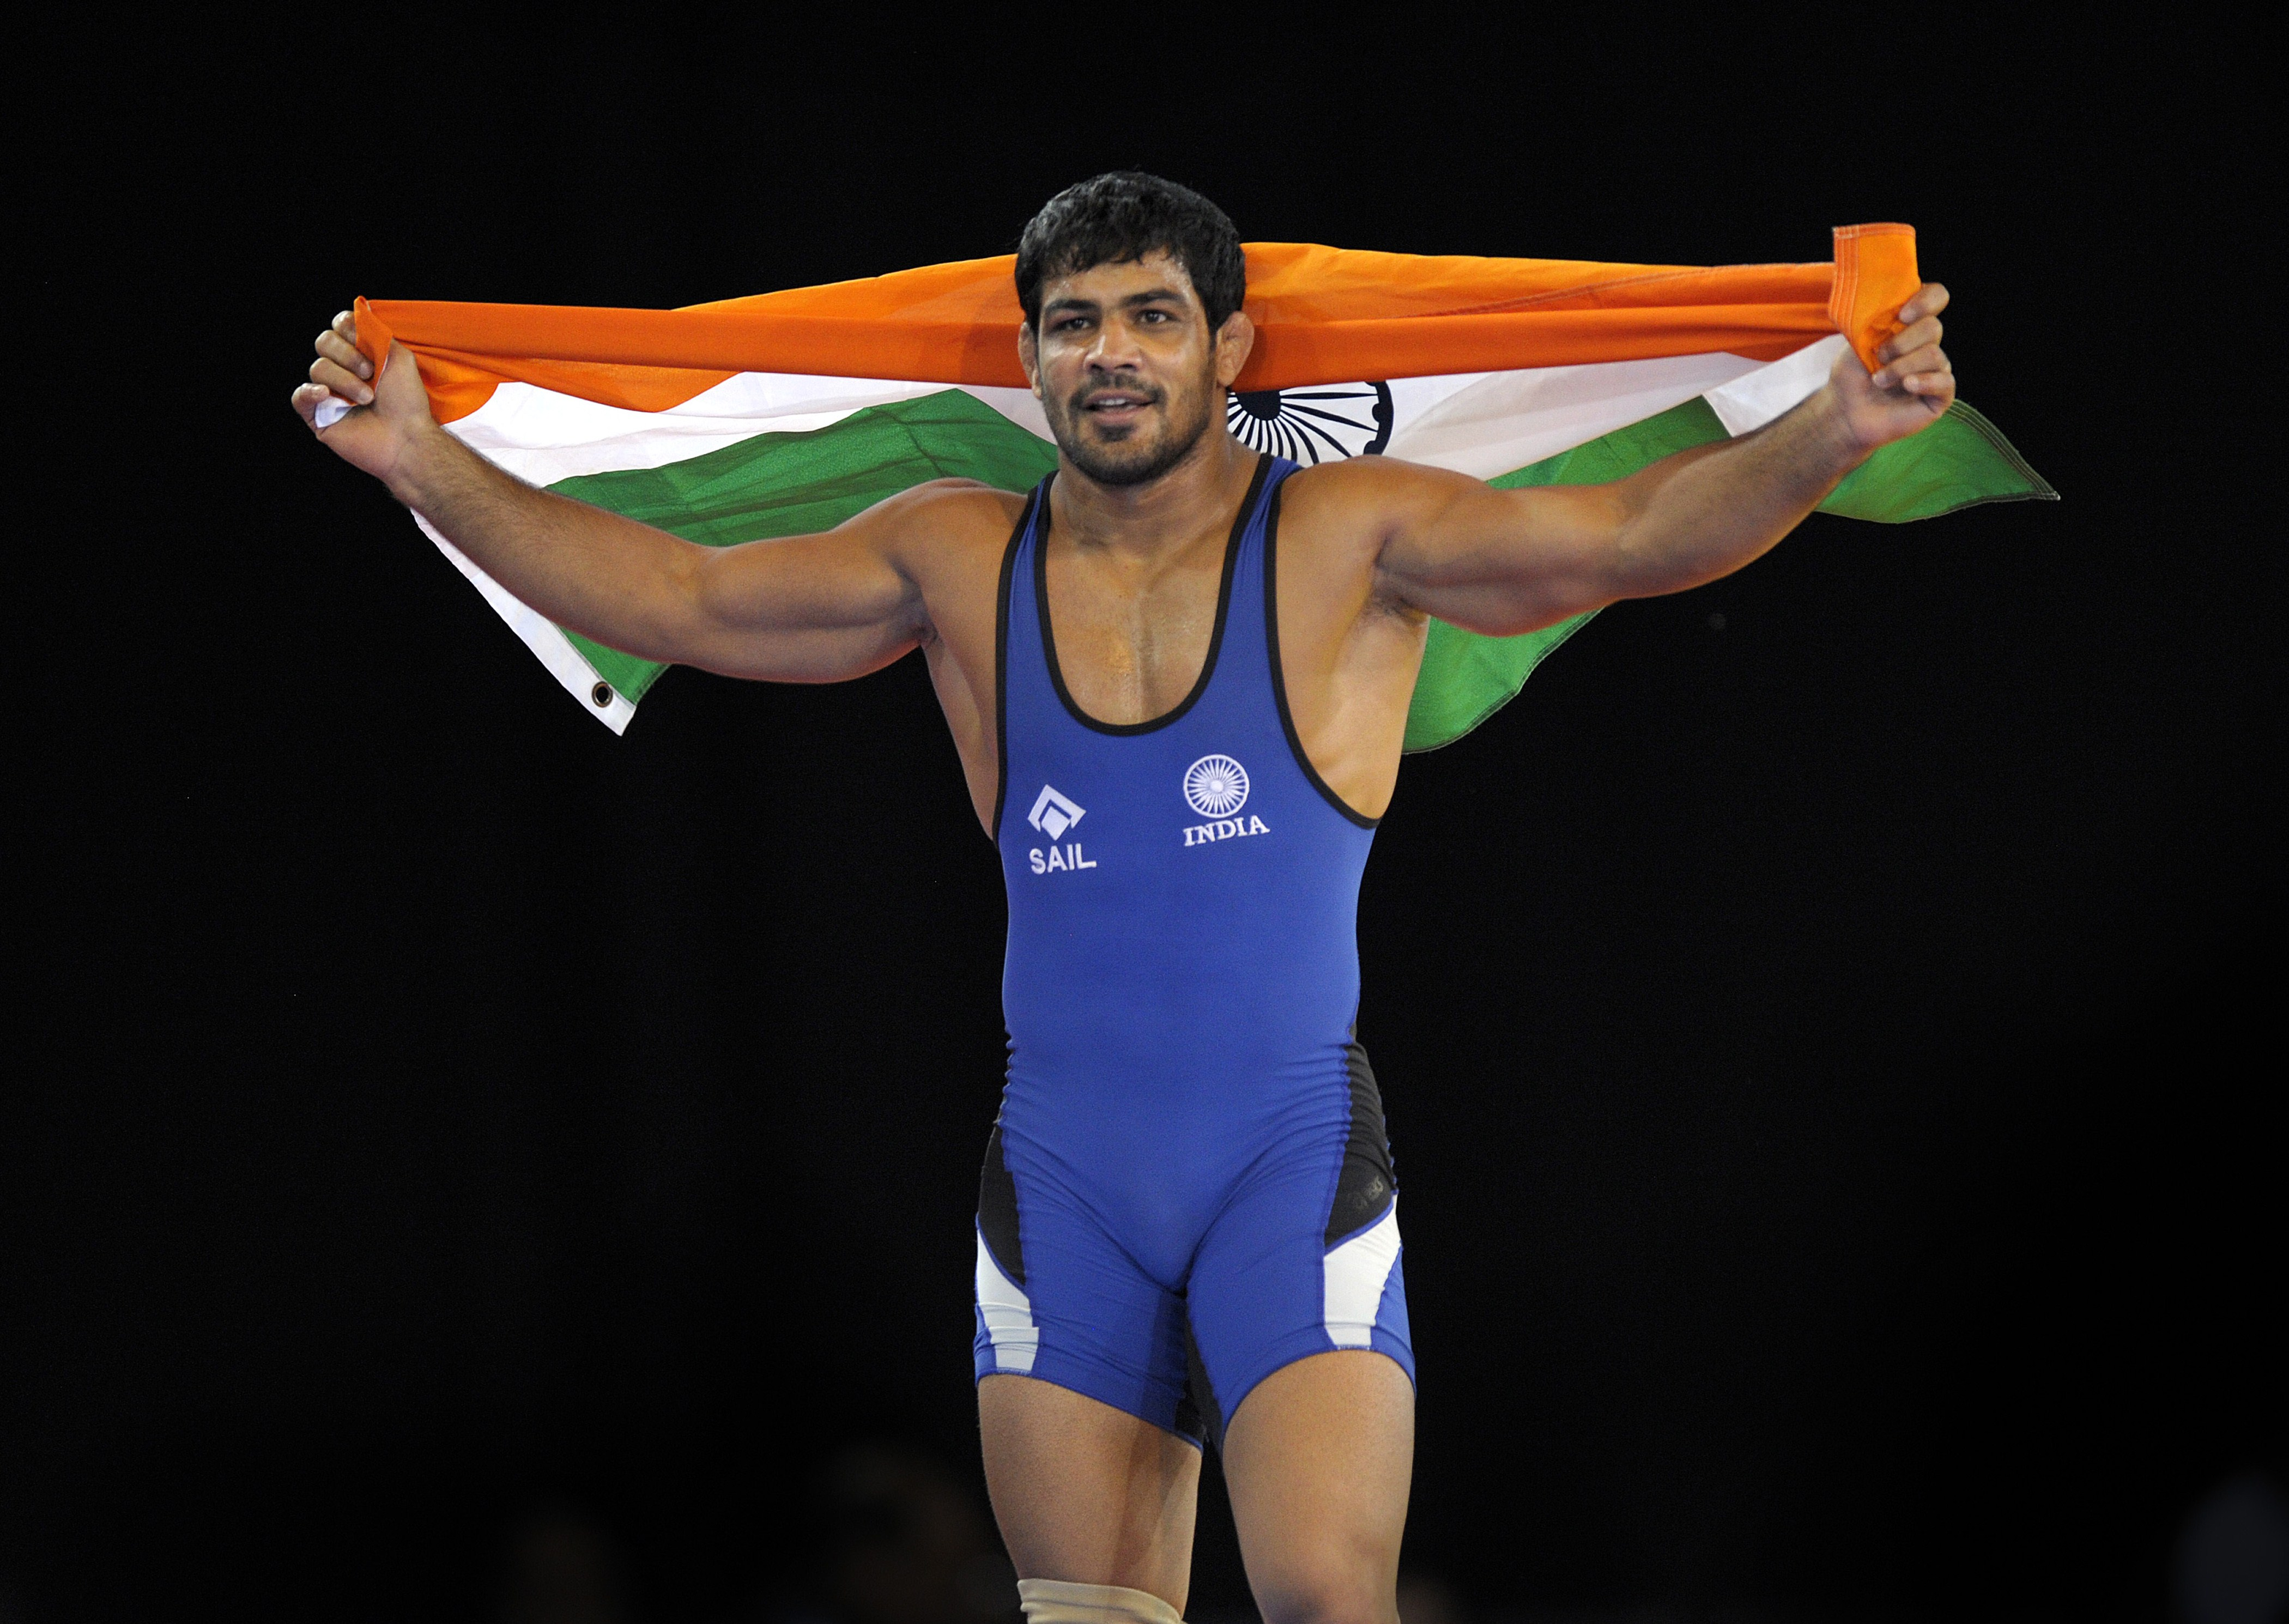 Sushil Kumar at the Commonweath Games in Glasgow in 2014.